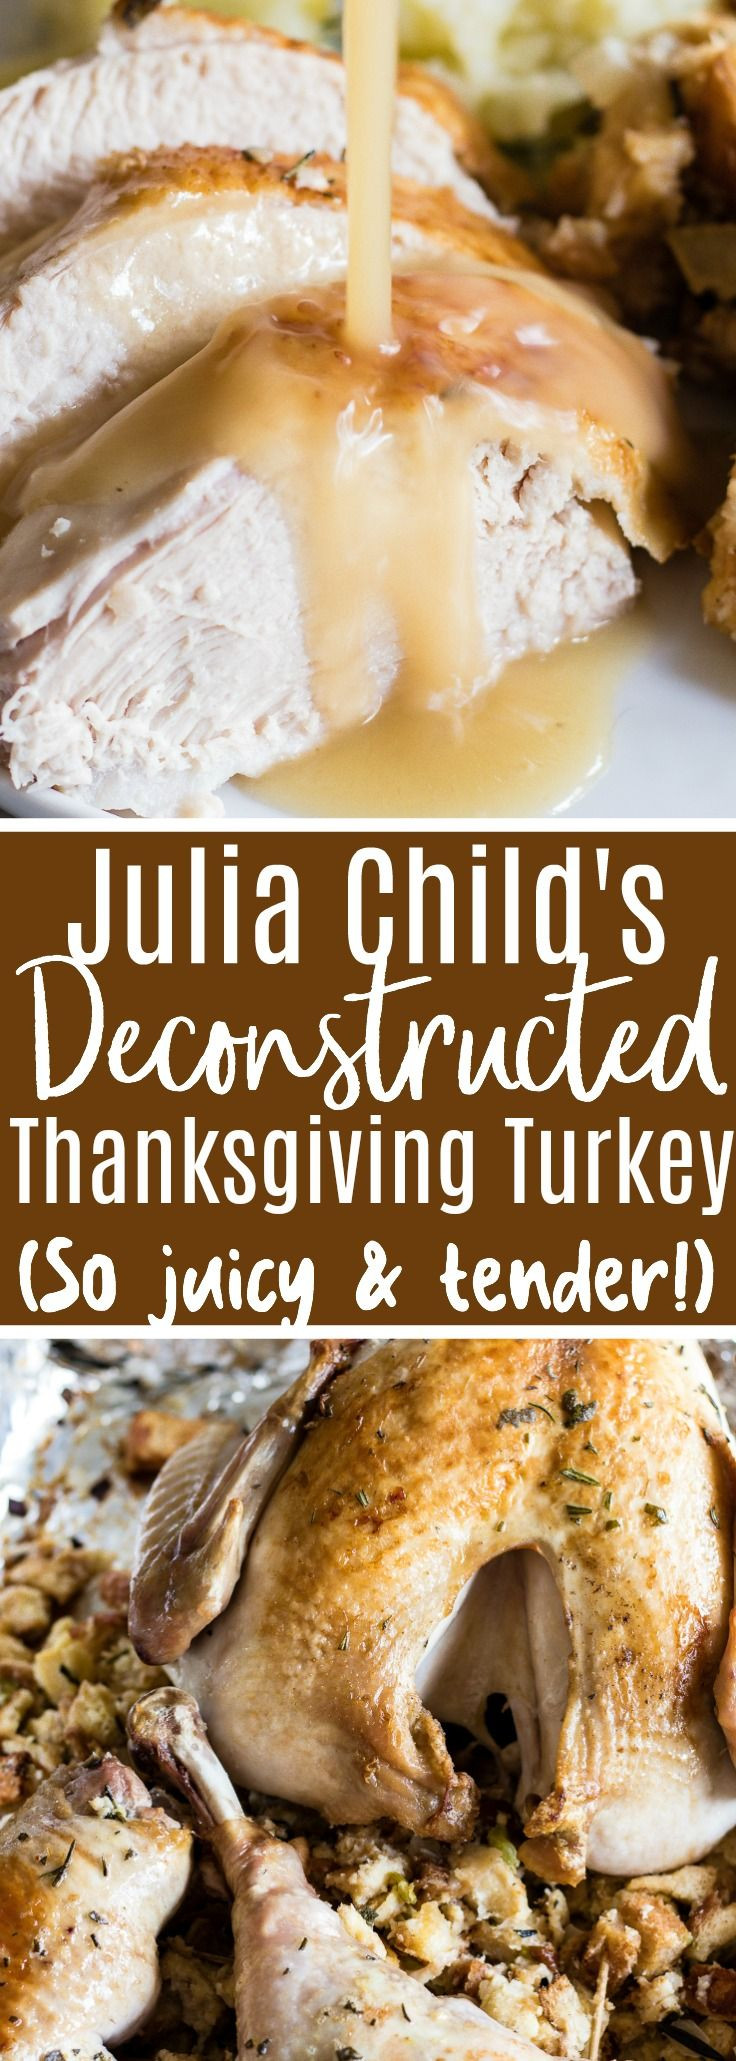 Julia Child Thanksgiving Turkey  Best 25 Julia childs ideas on Pinterest